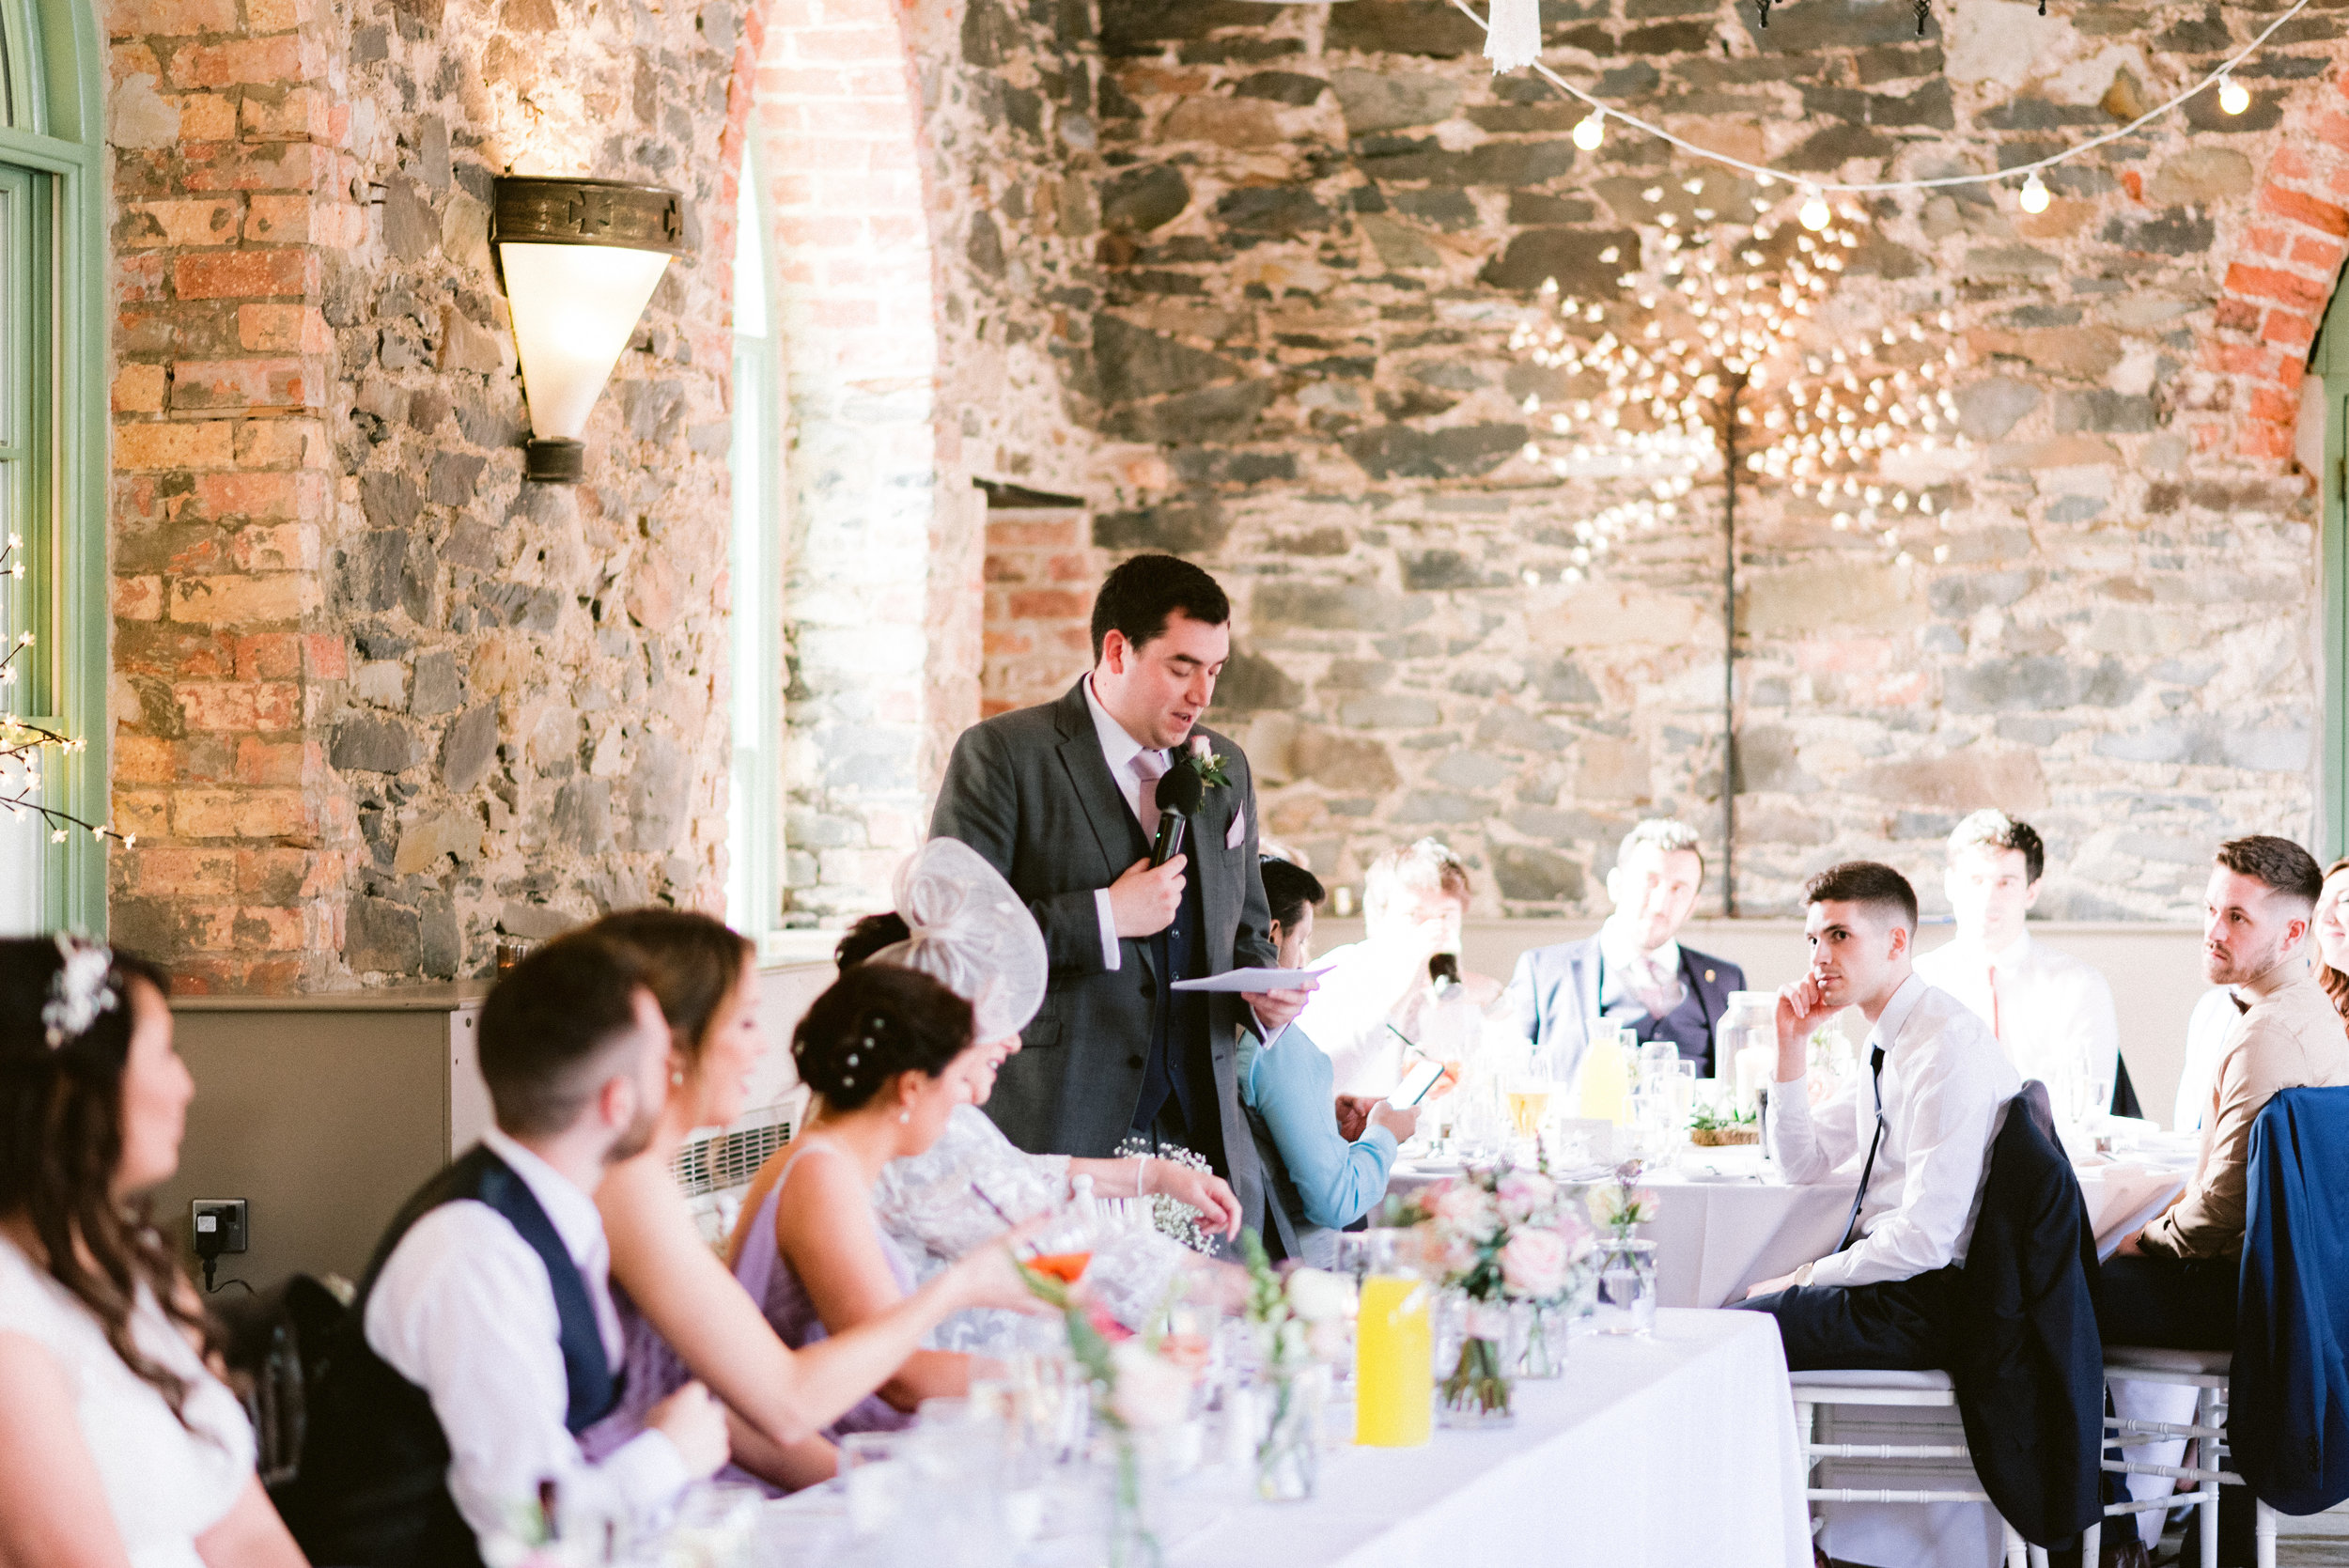 orange tree wedding, barn wedding venue northern ireland, rustic wedding venues NI, bright wedding venues northern ireland, greyabbey wedding venue, wedding speeches, first dance (2).jpg